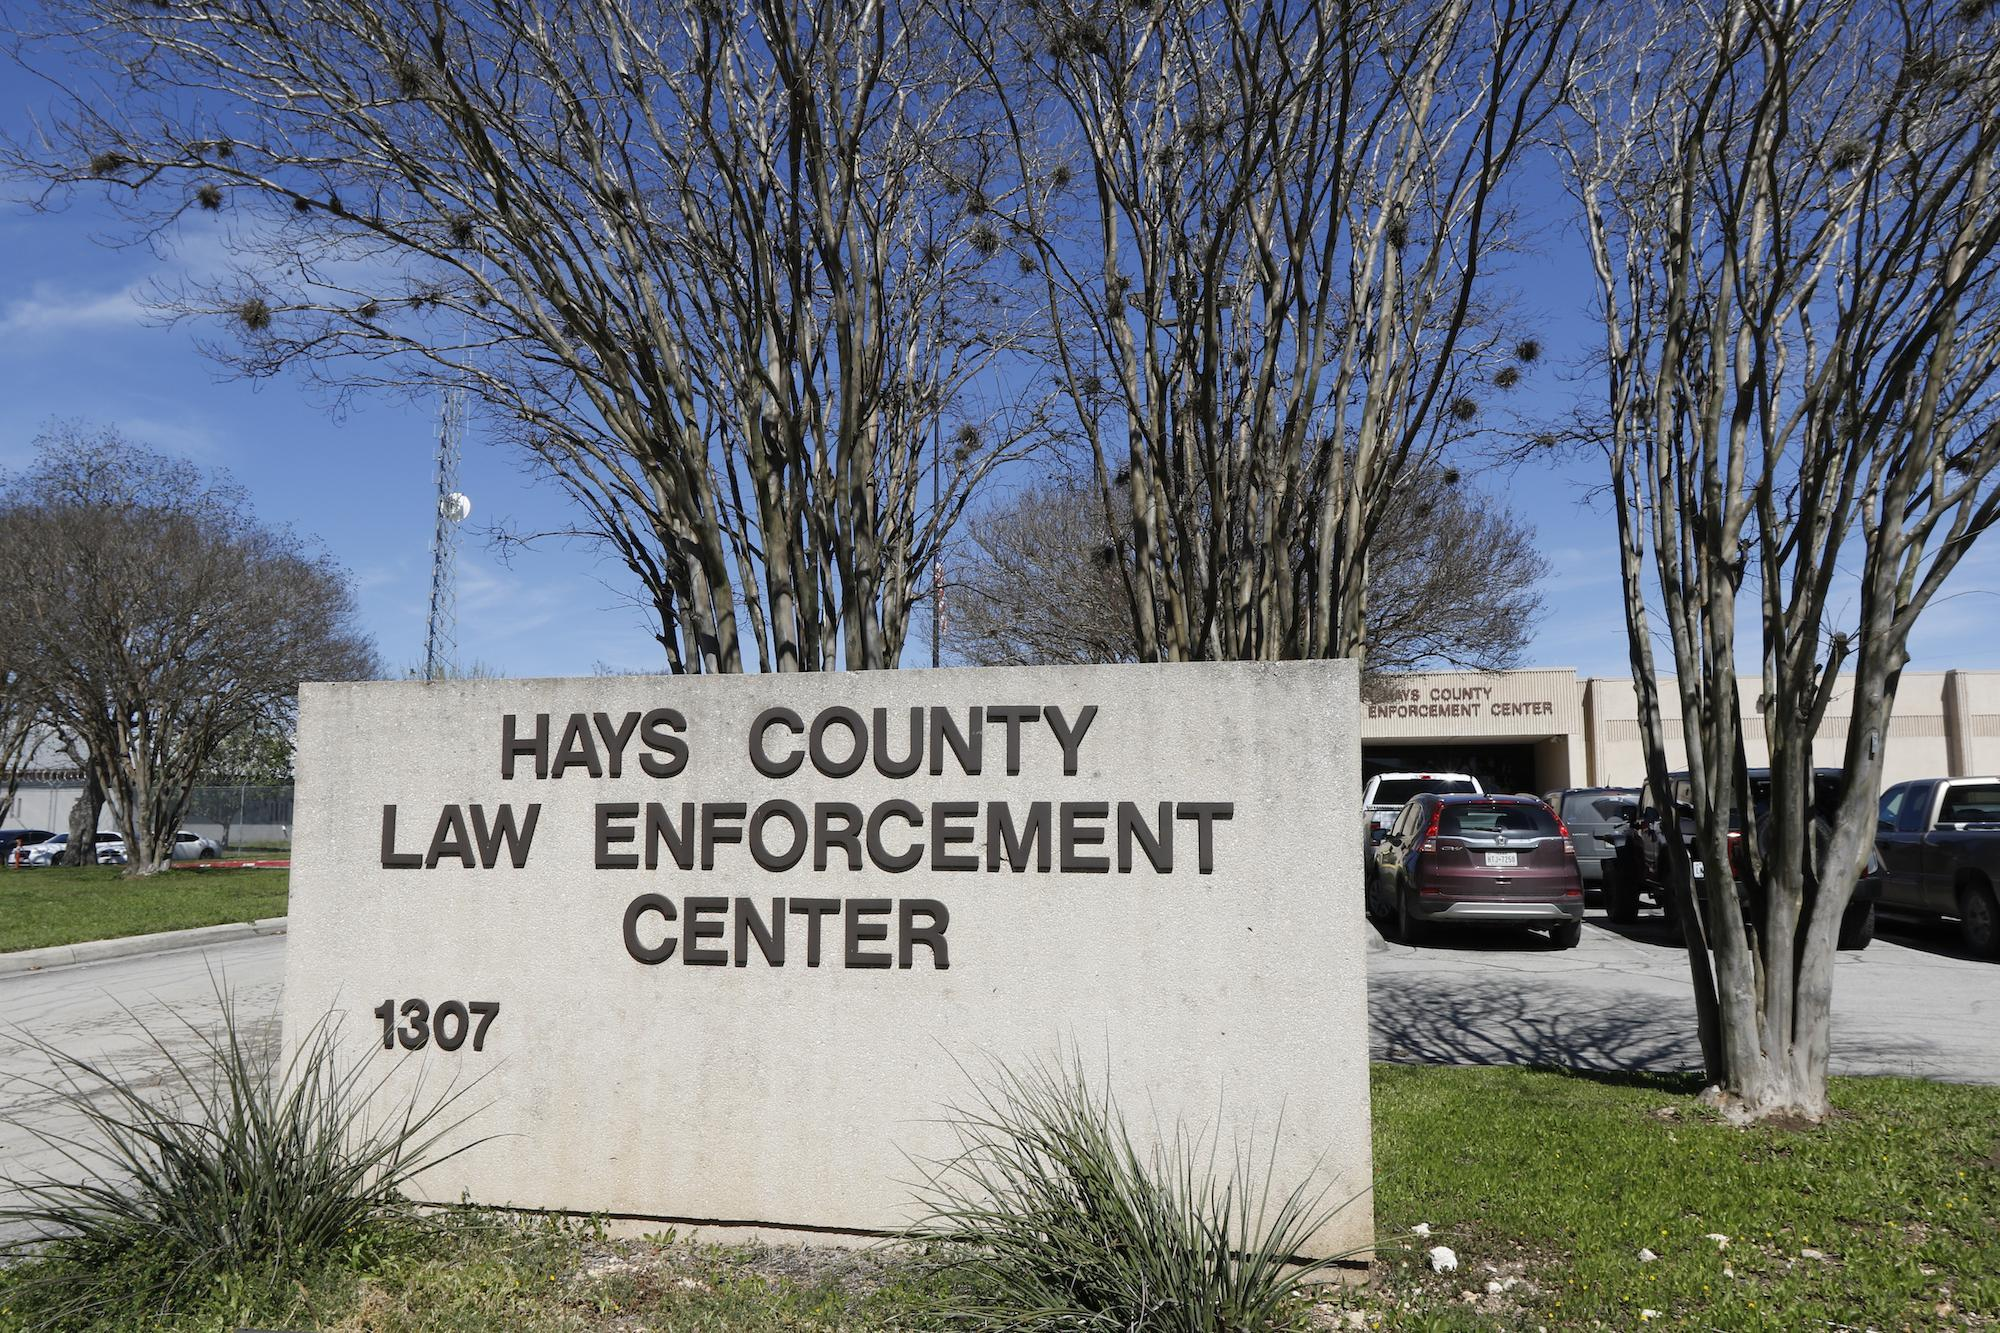 Hays County Jail outsourcing numbers continue to increase